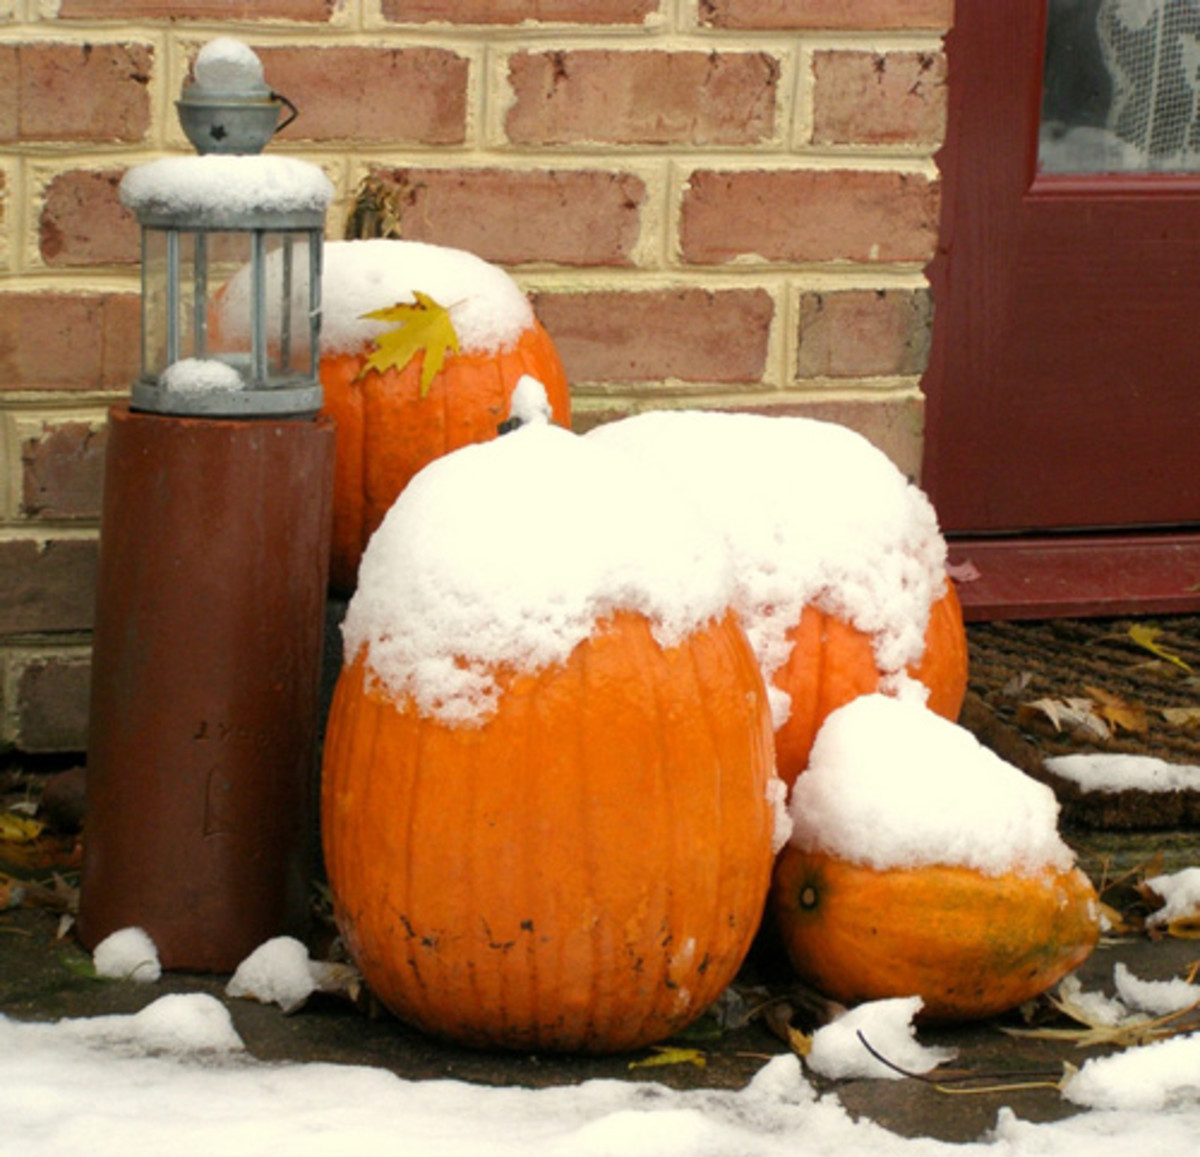 Chilly late fall snow on pumpkins